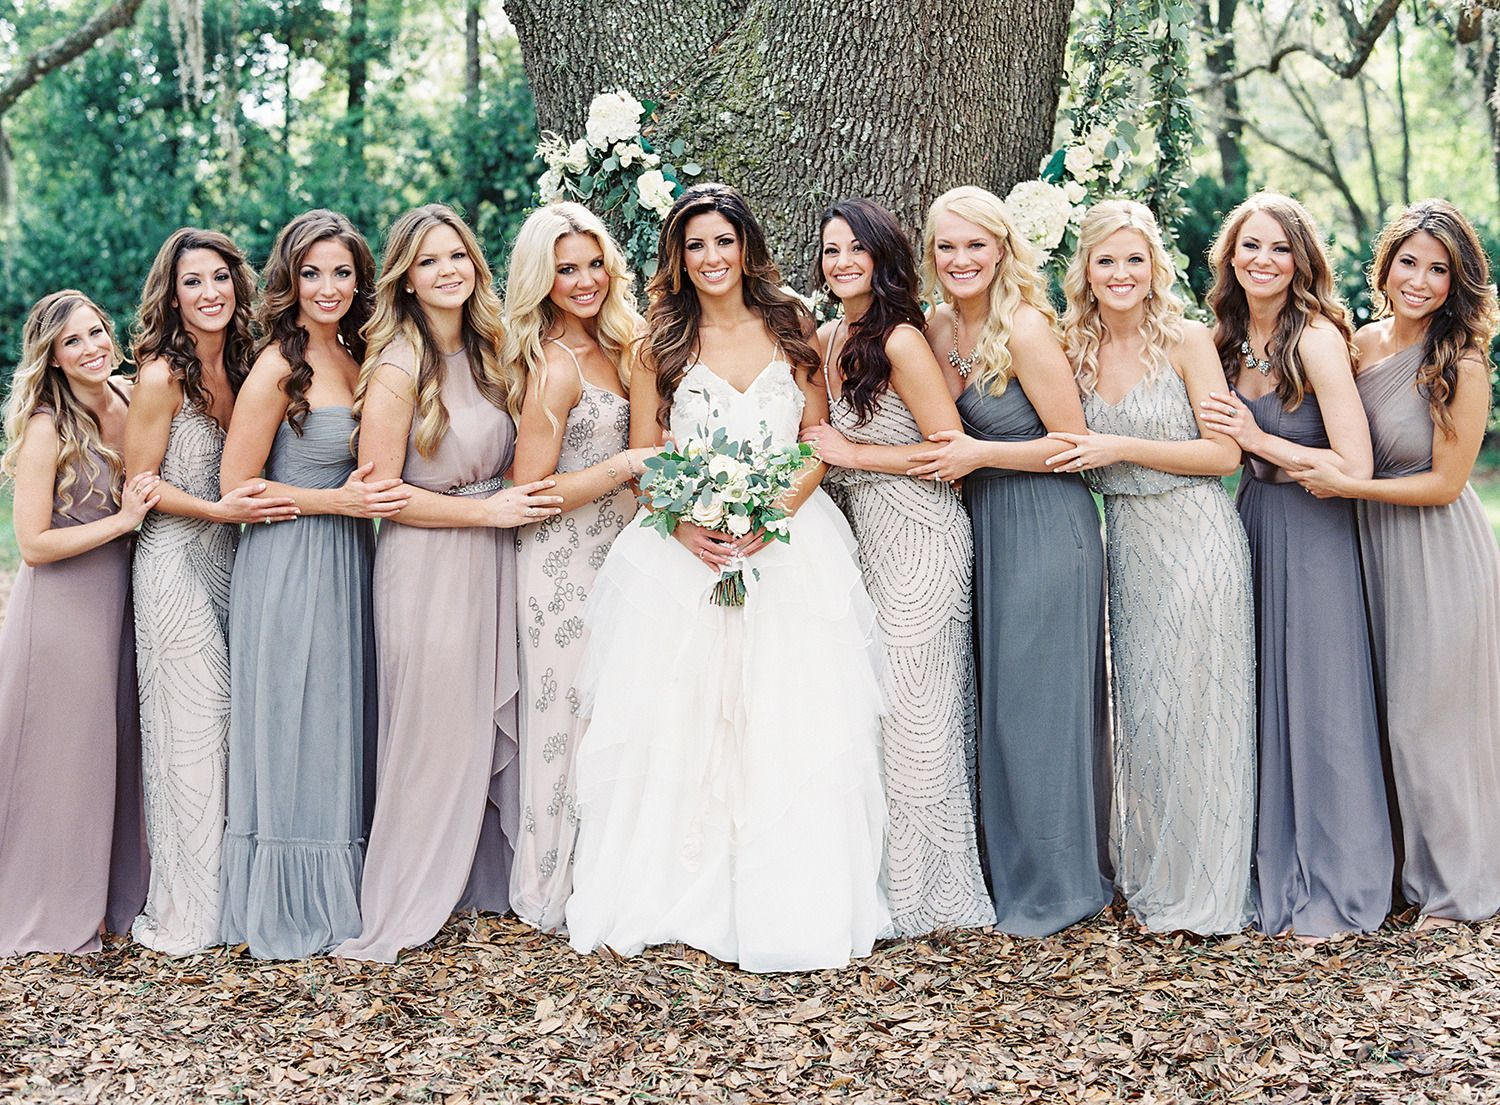 25 best grey bridesmaid dresses ideas on pinterest grey rustic elegant jacksonville wedding mismatched bridesmaid dressesbridesmaid ombrellifo Image collections